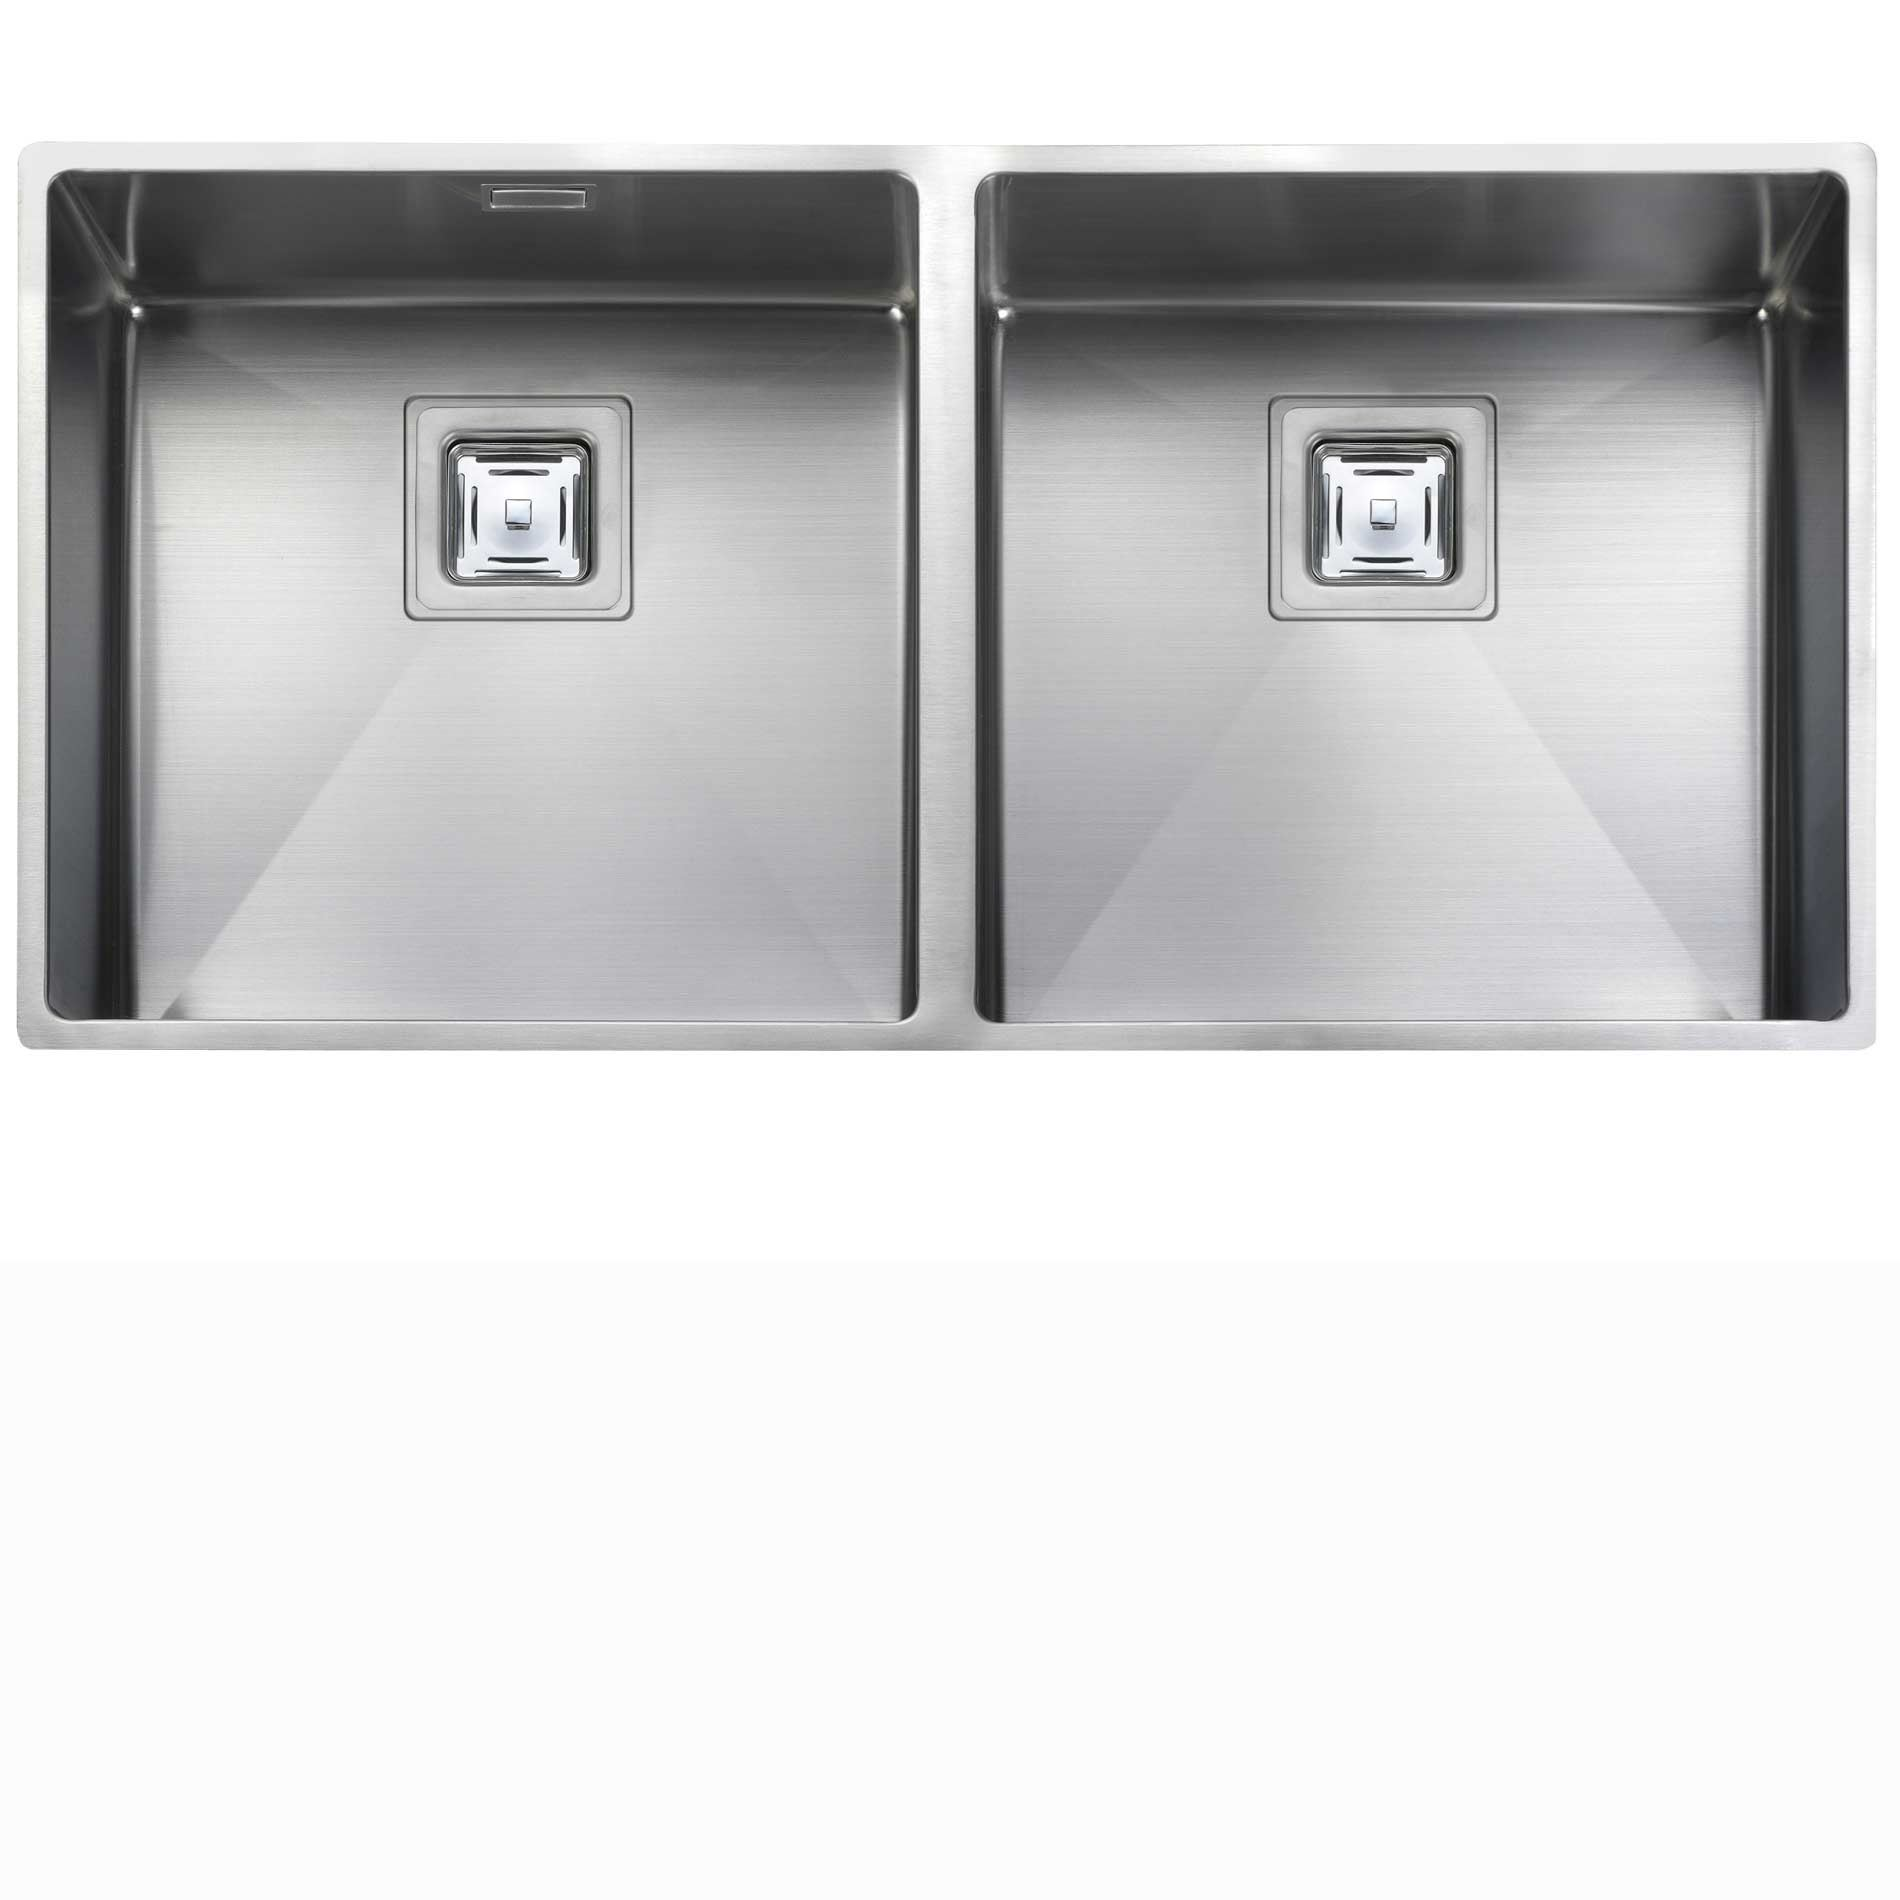 Picture of Atlantic Kube KUB4040 Stainless Steel Sink